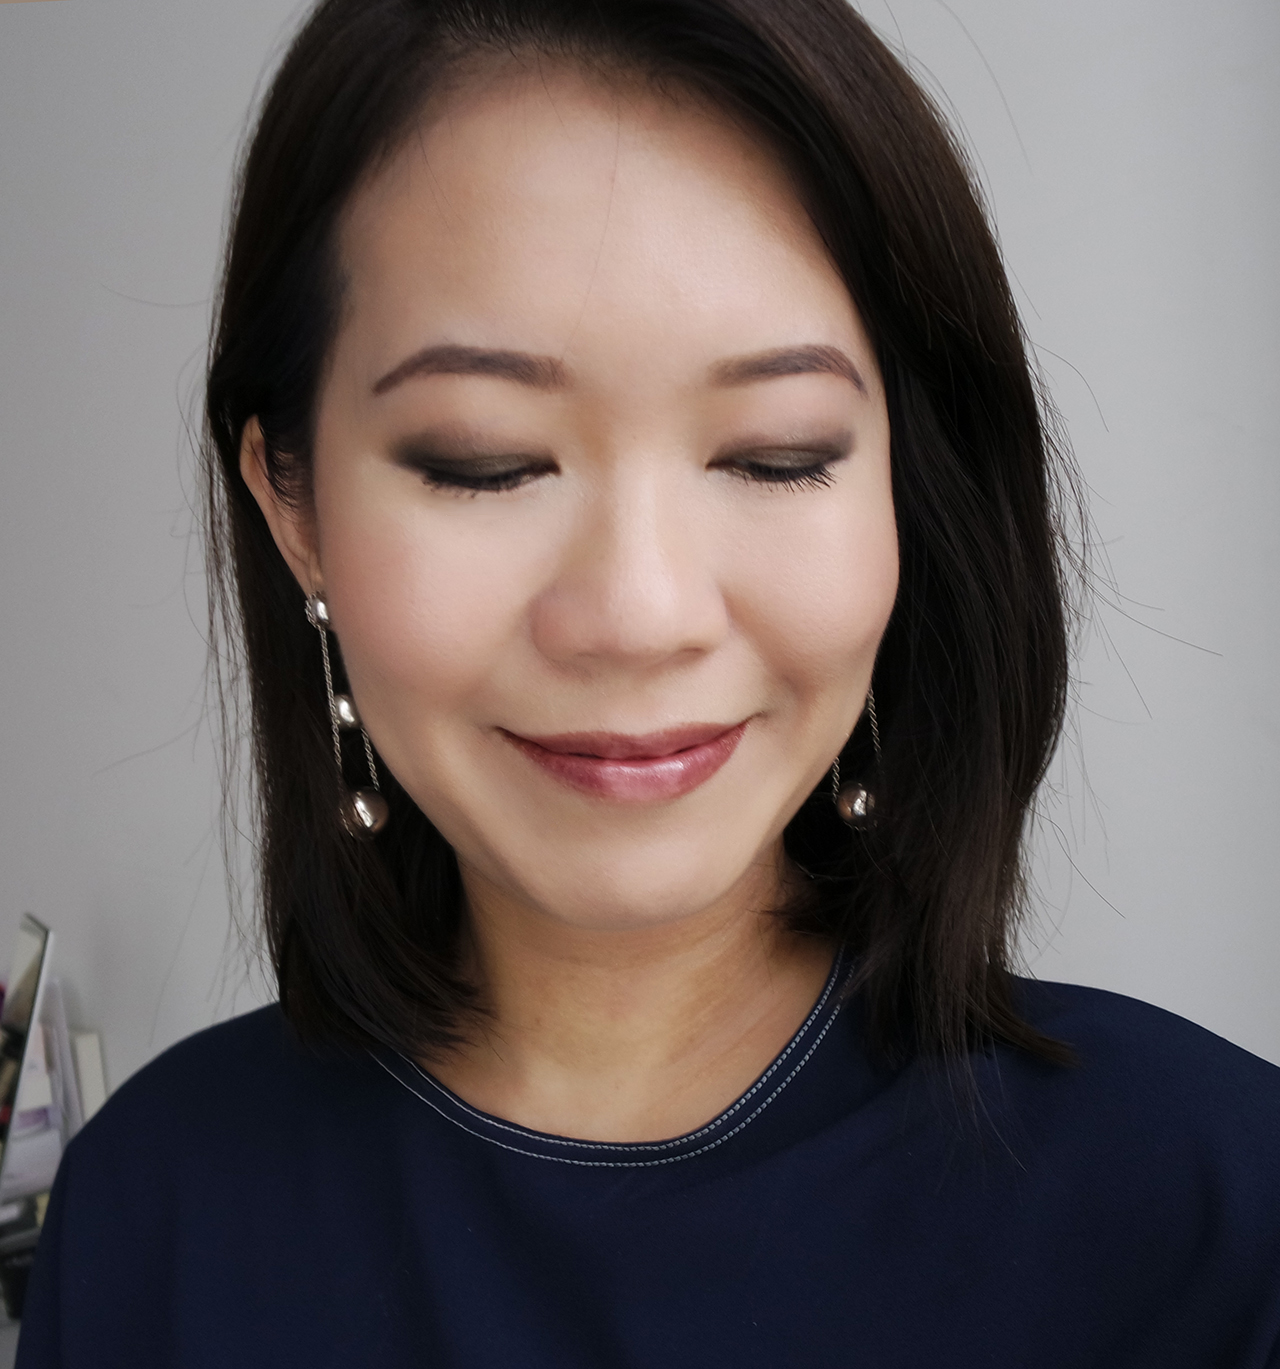 Nude makeup look from Chanel Le Libre Maximalisme